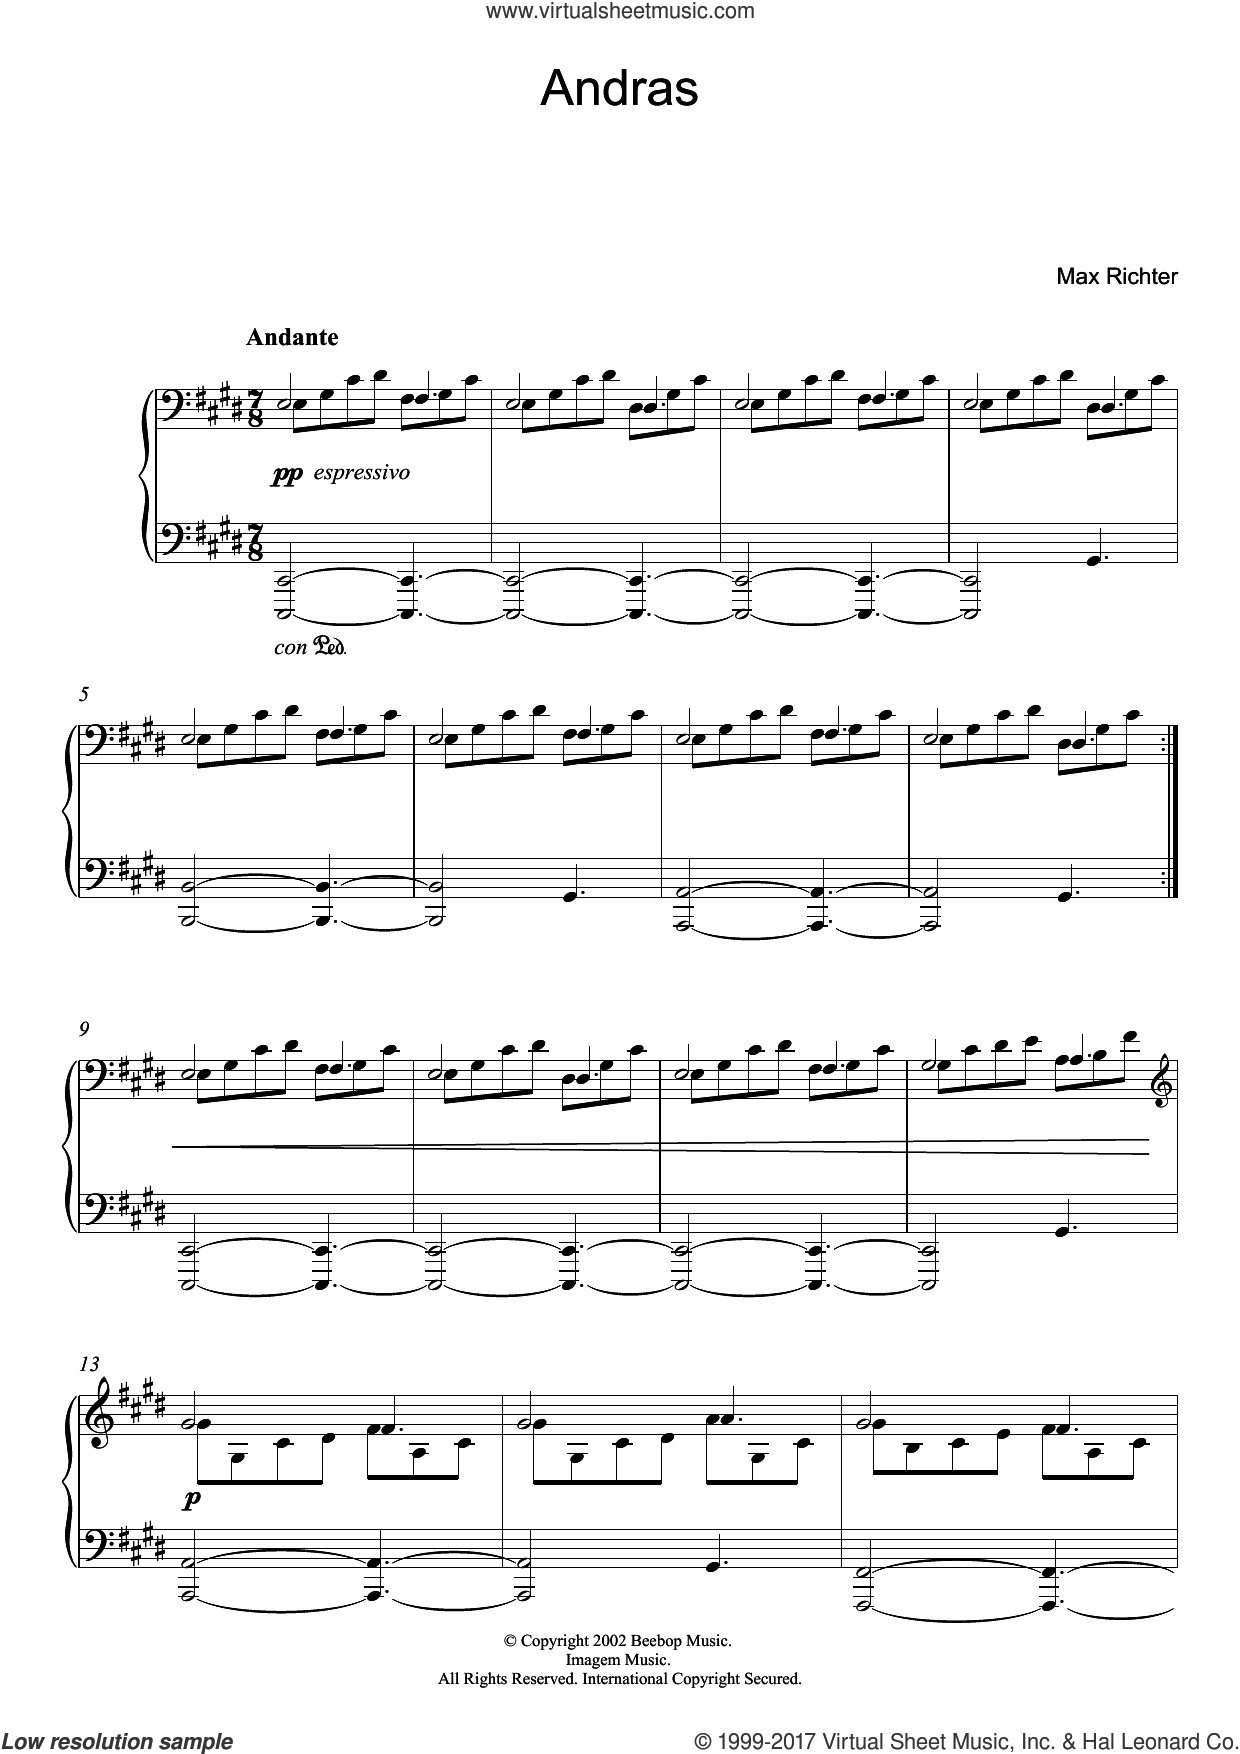 Andras sheet music for piano solo by Max Richter, classical score, intermediate skill level